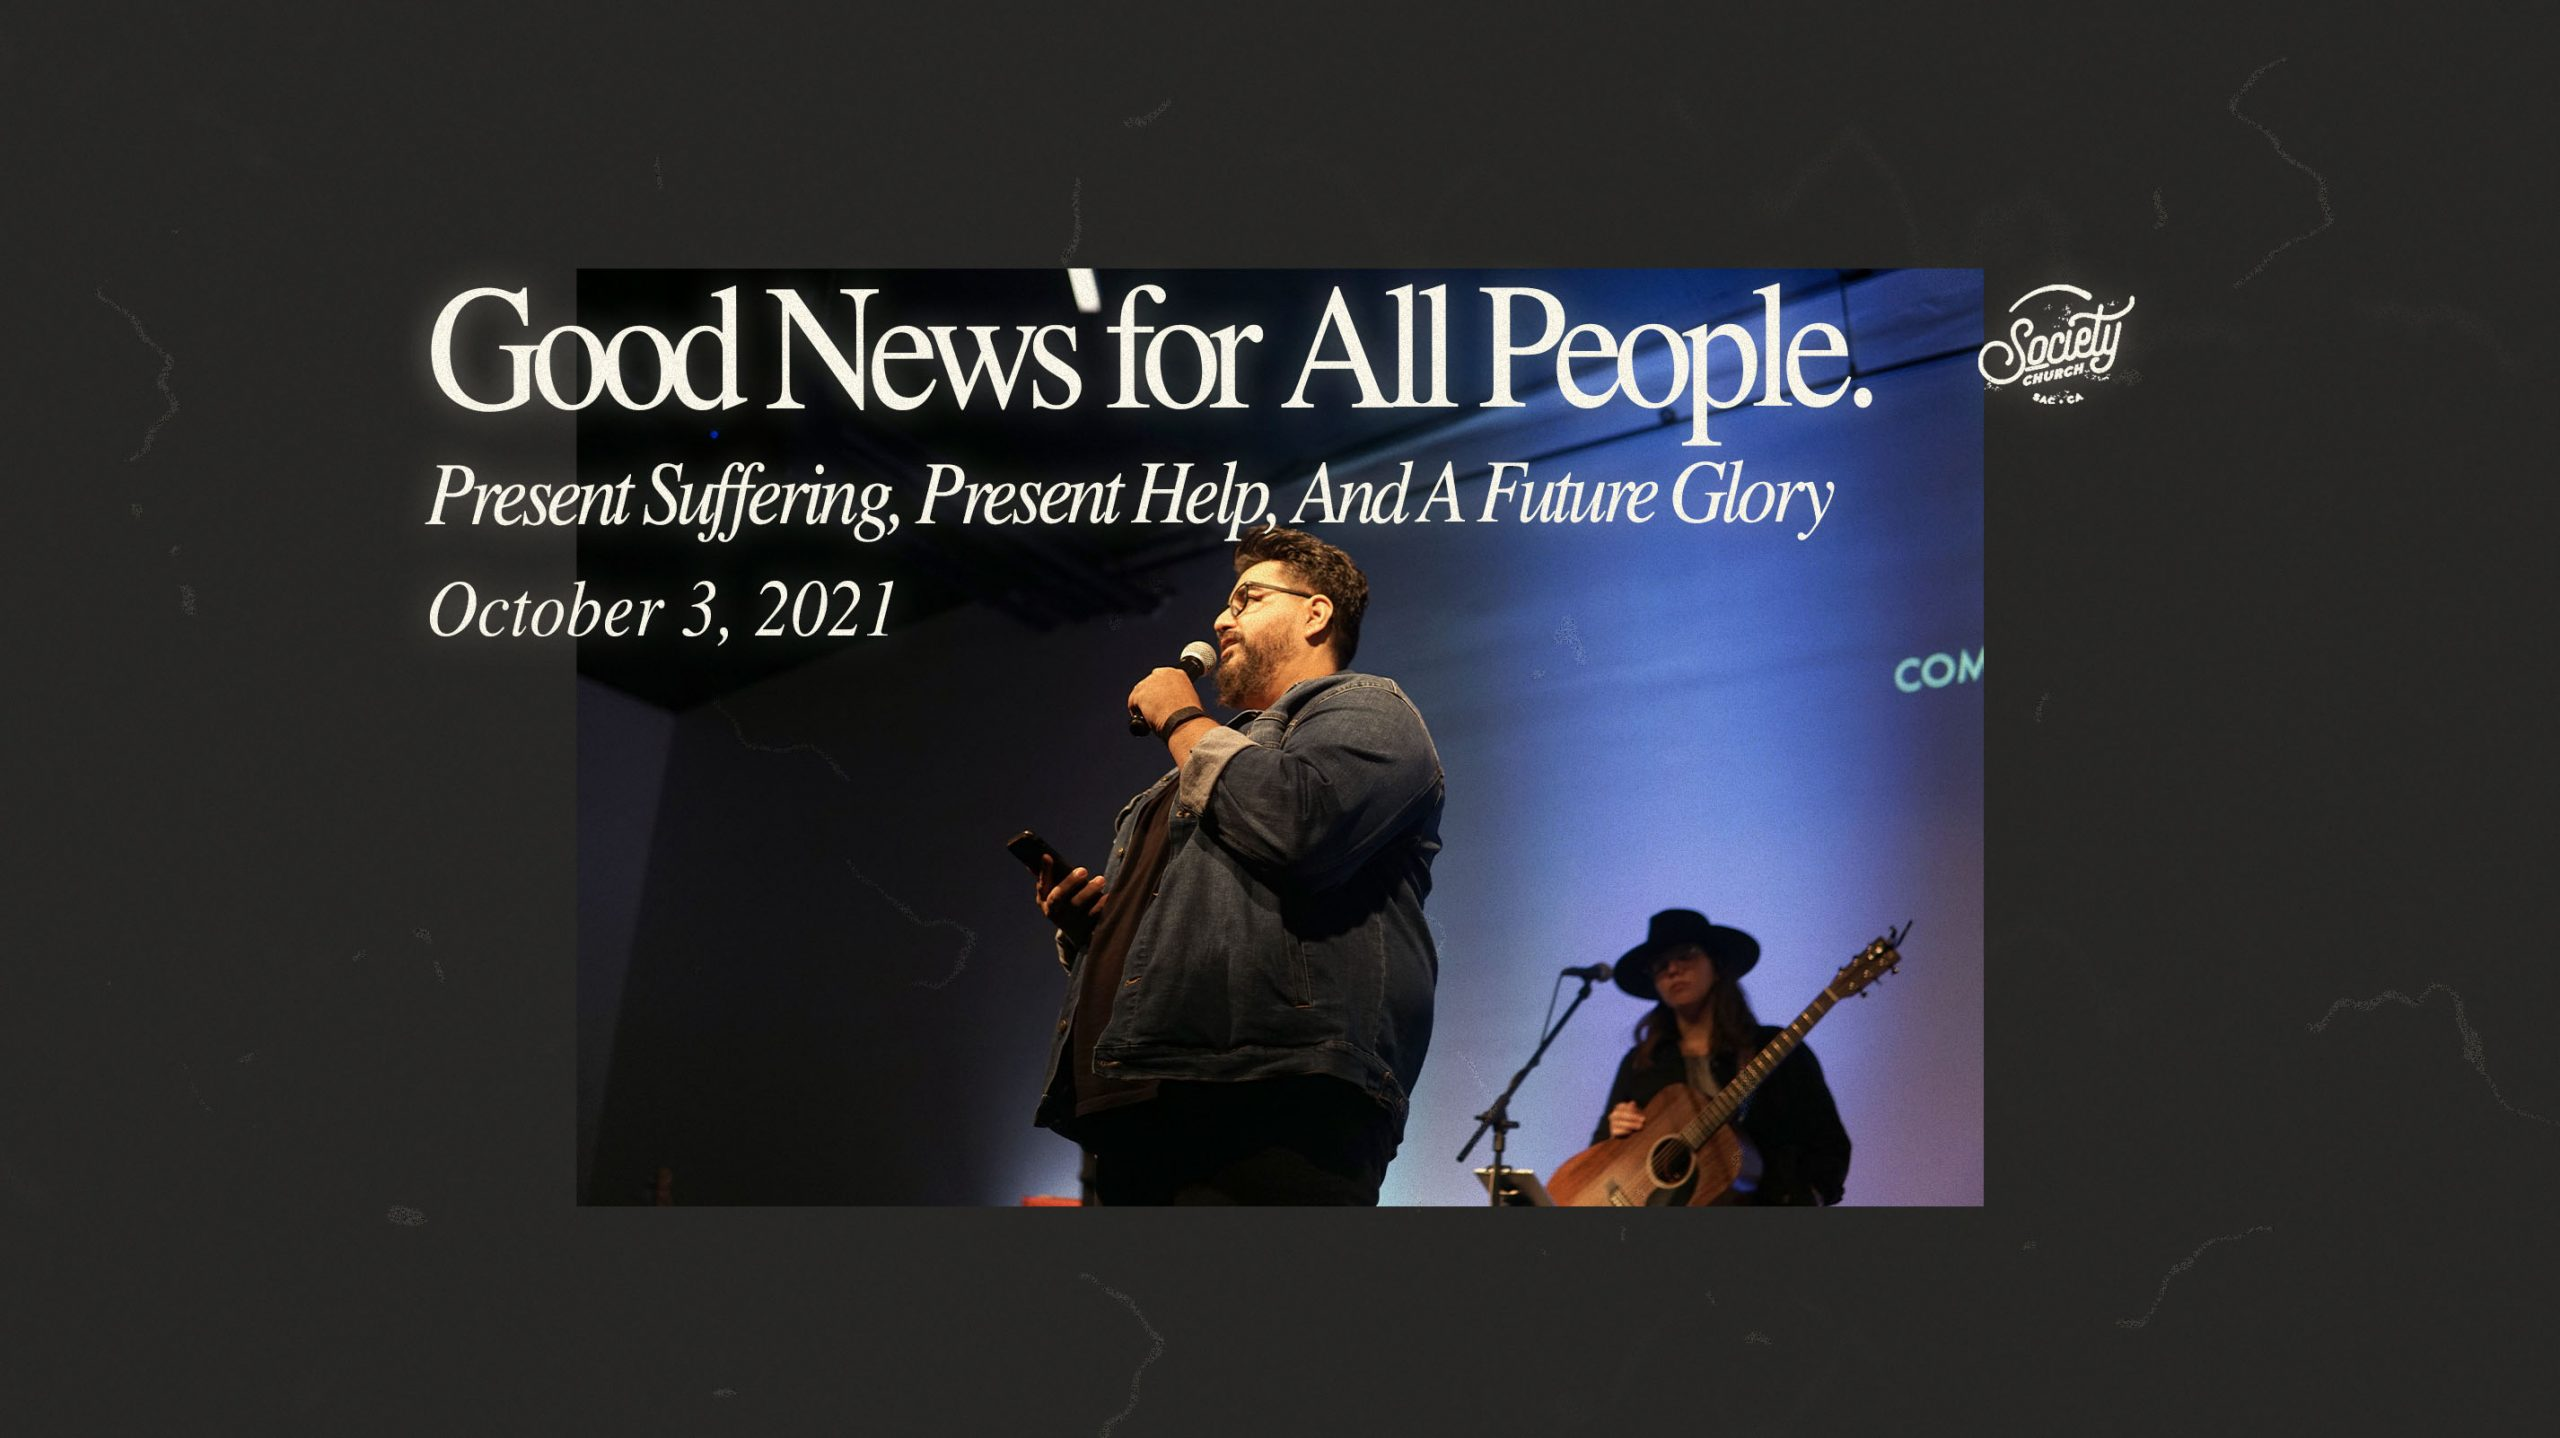 Good News for All People: Present Suffering, Present Help, And A Future Glory